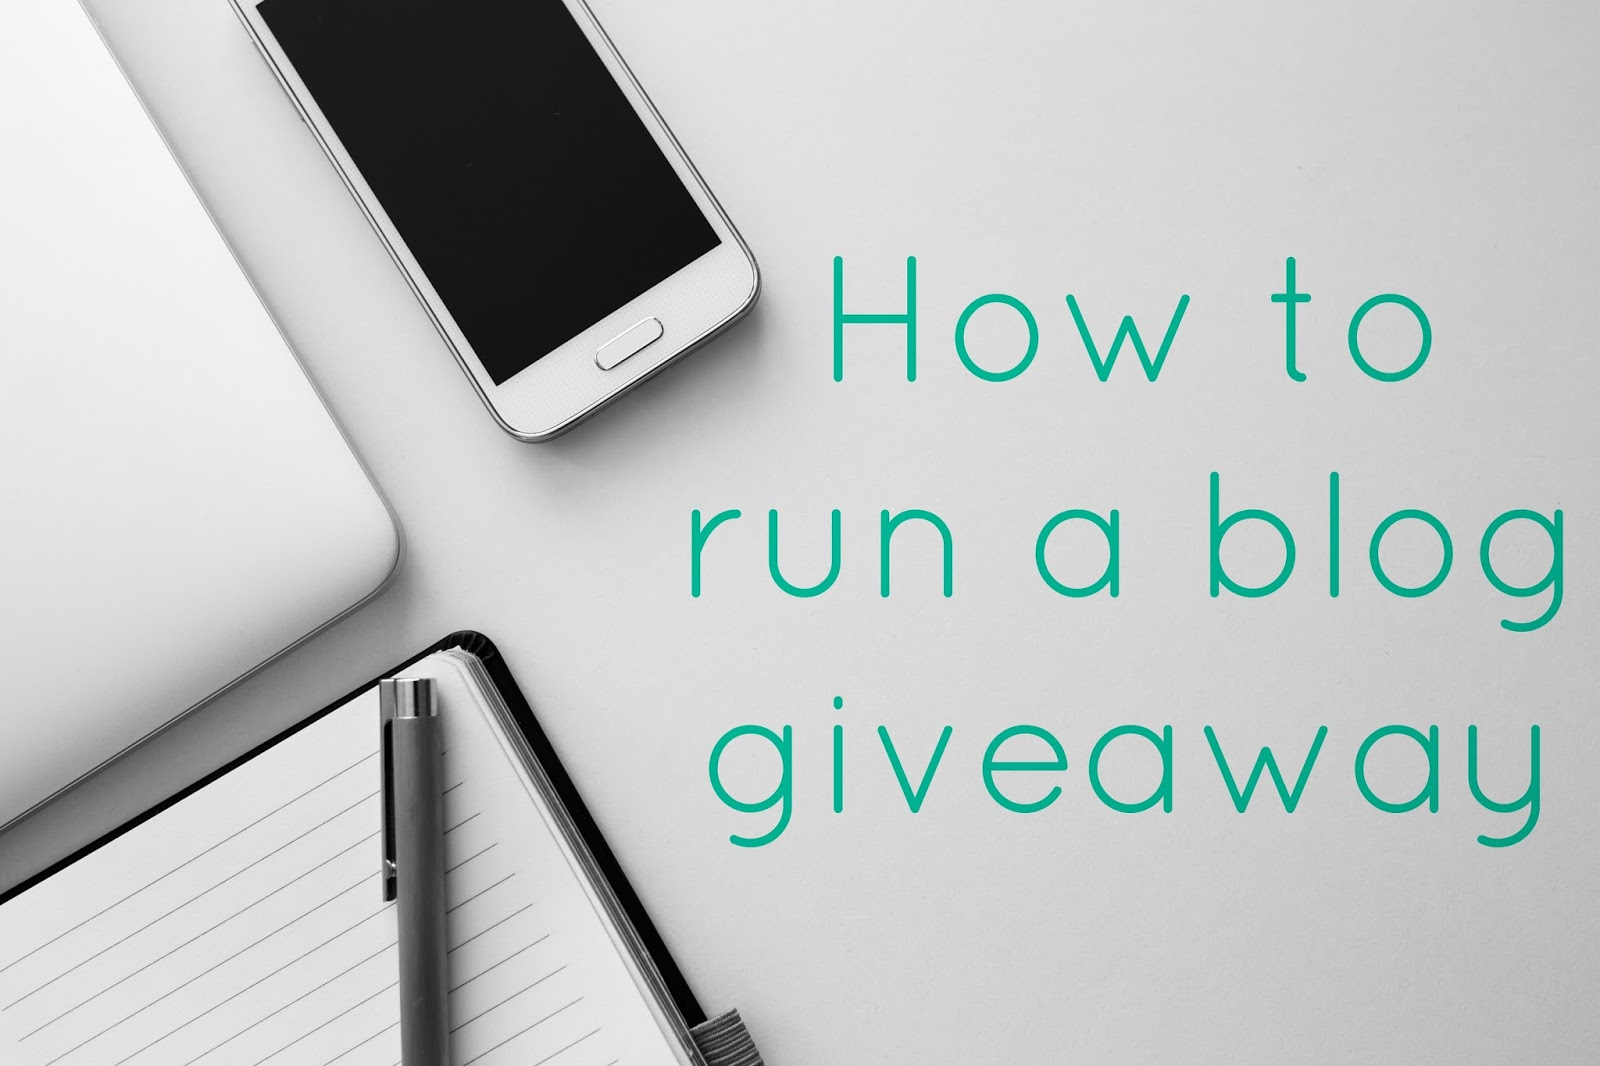 giveaway blogs how to run a blog giveaway dollfaceblogs 5694